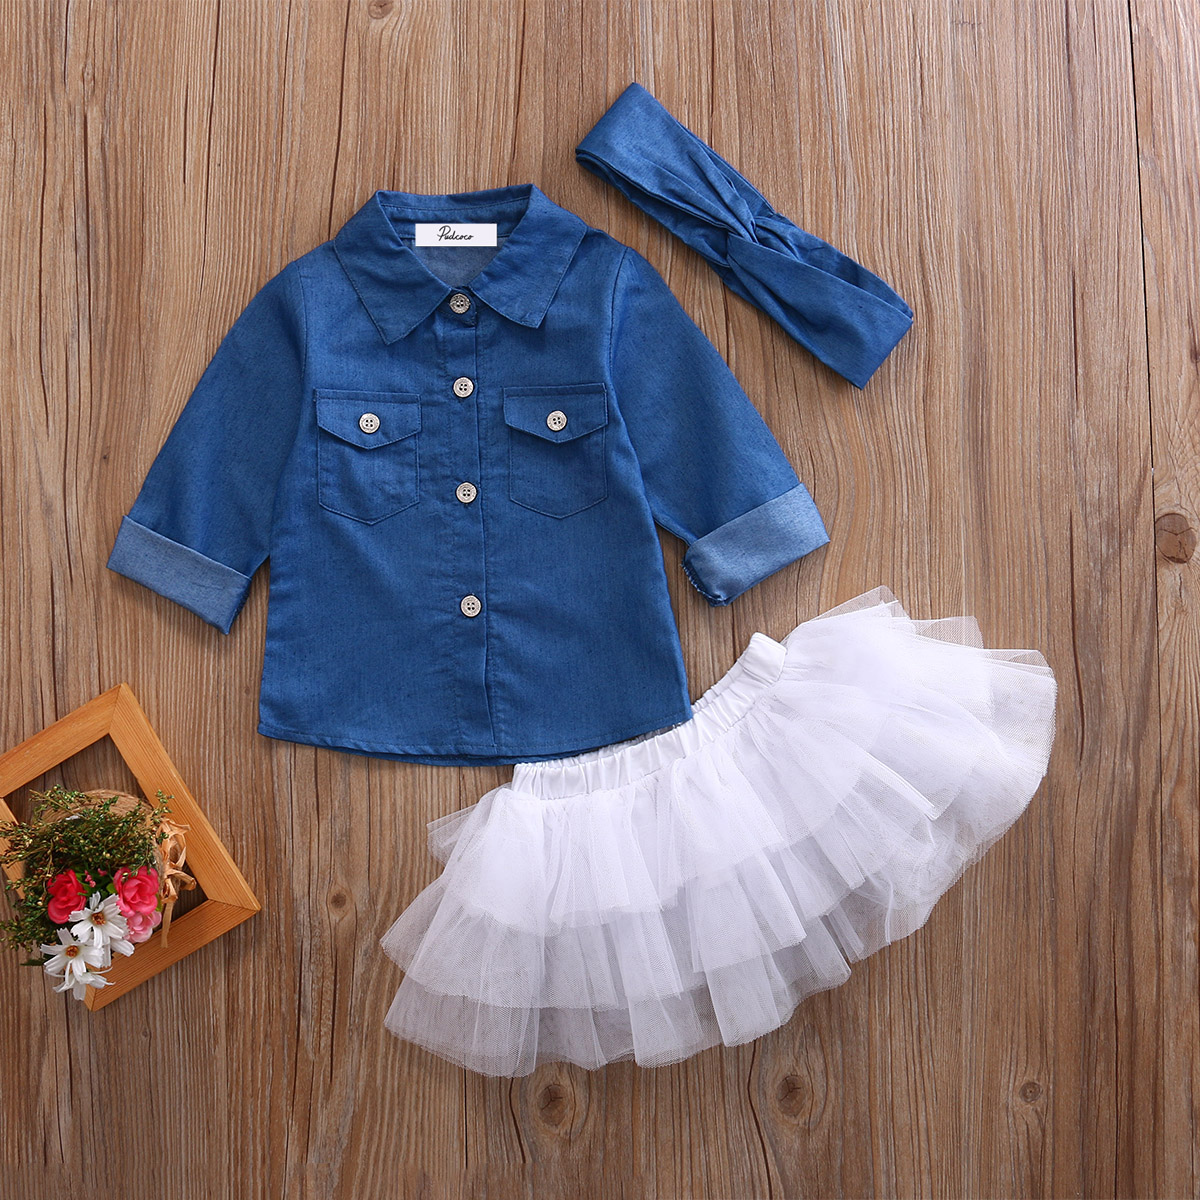 Girls-Tops-Shirt-Tutu-Skirts-Ruffles-Cute-Party-3pcs-Outfits-Clothing-Set-Toddler-Kids-Baby-Girl-Clothes-Set-Denim-2